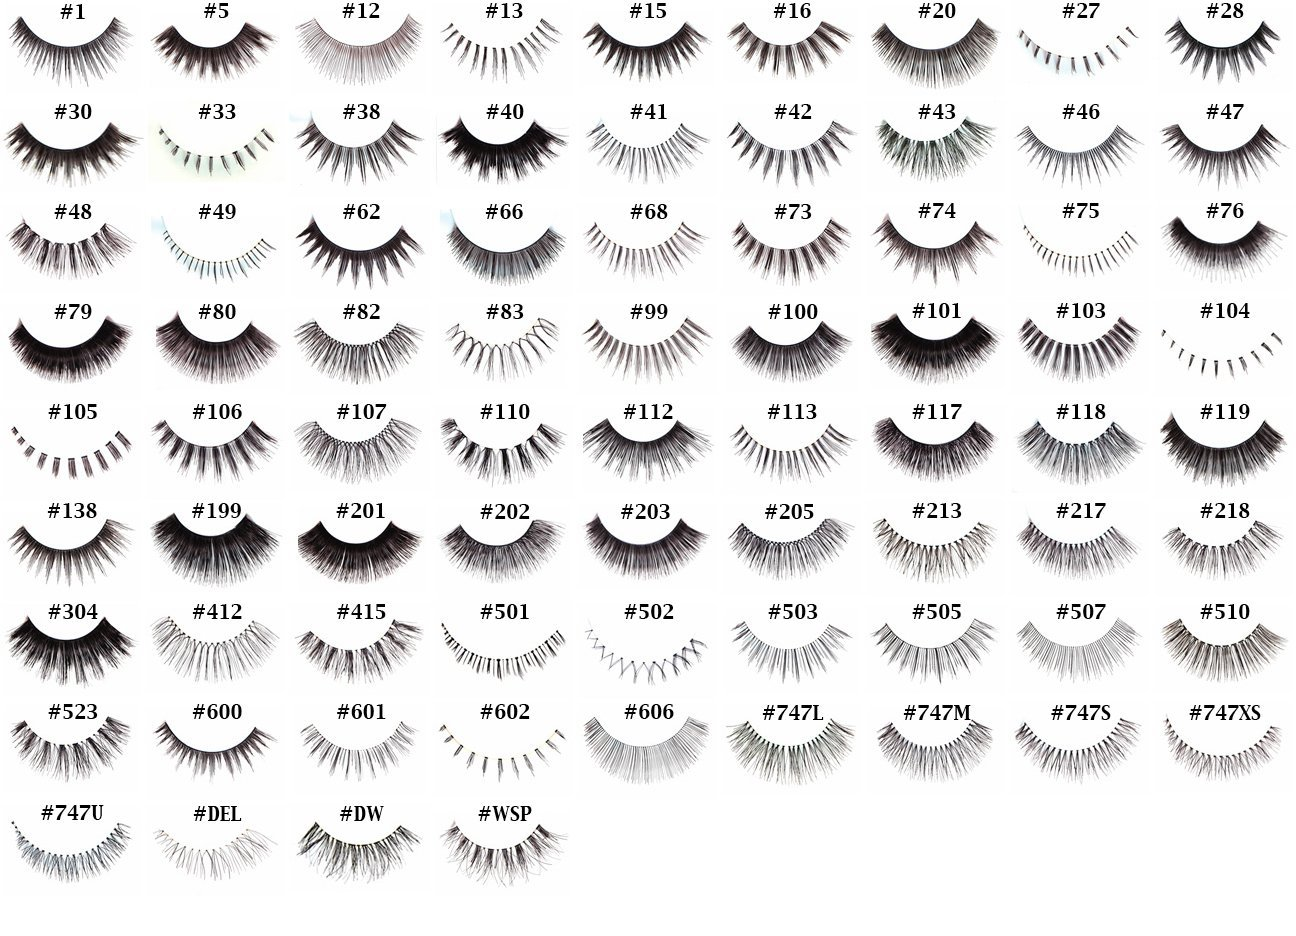 "20 Pairs of Red Cherry 100% Human Hair False Eyelashes ""Pick Your Choice of any 20 Pairs"" - Mighty Gadget"